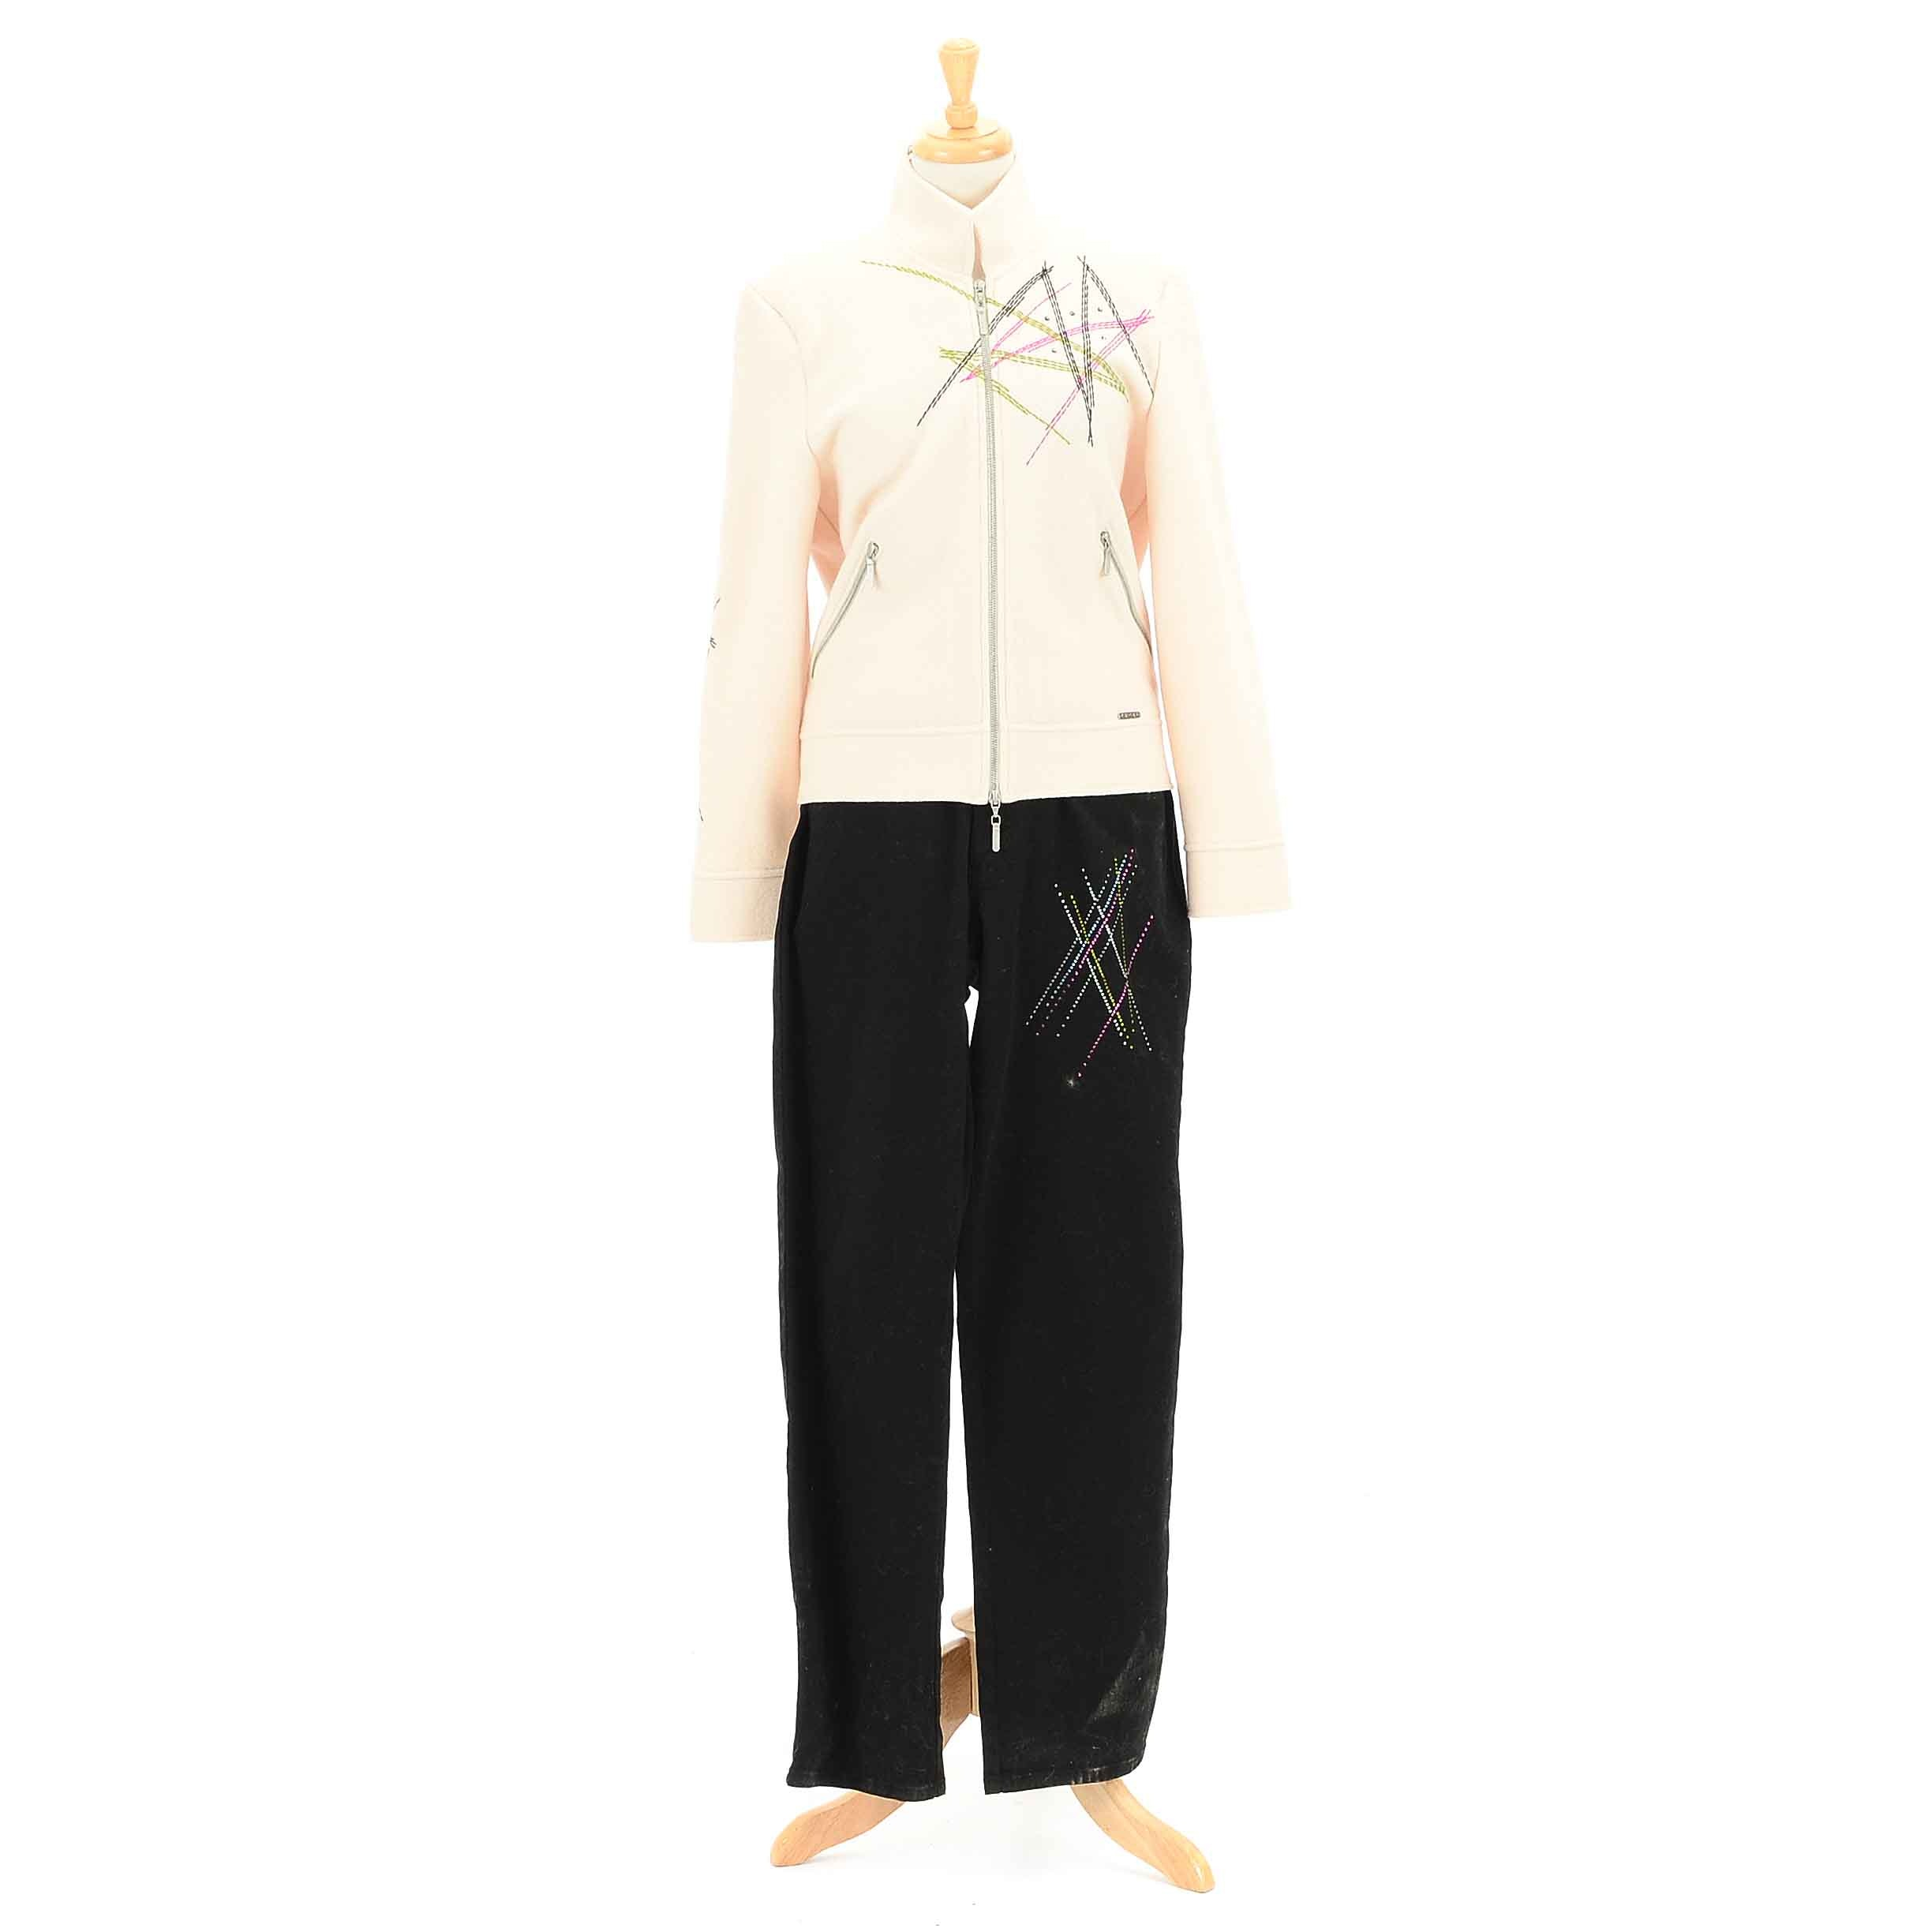 Women's Geiger Ivory Bomber Jacket  and Black Jeans